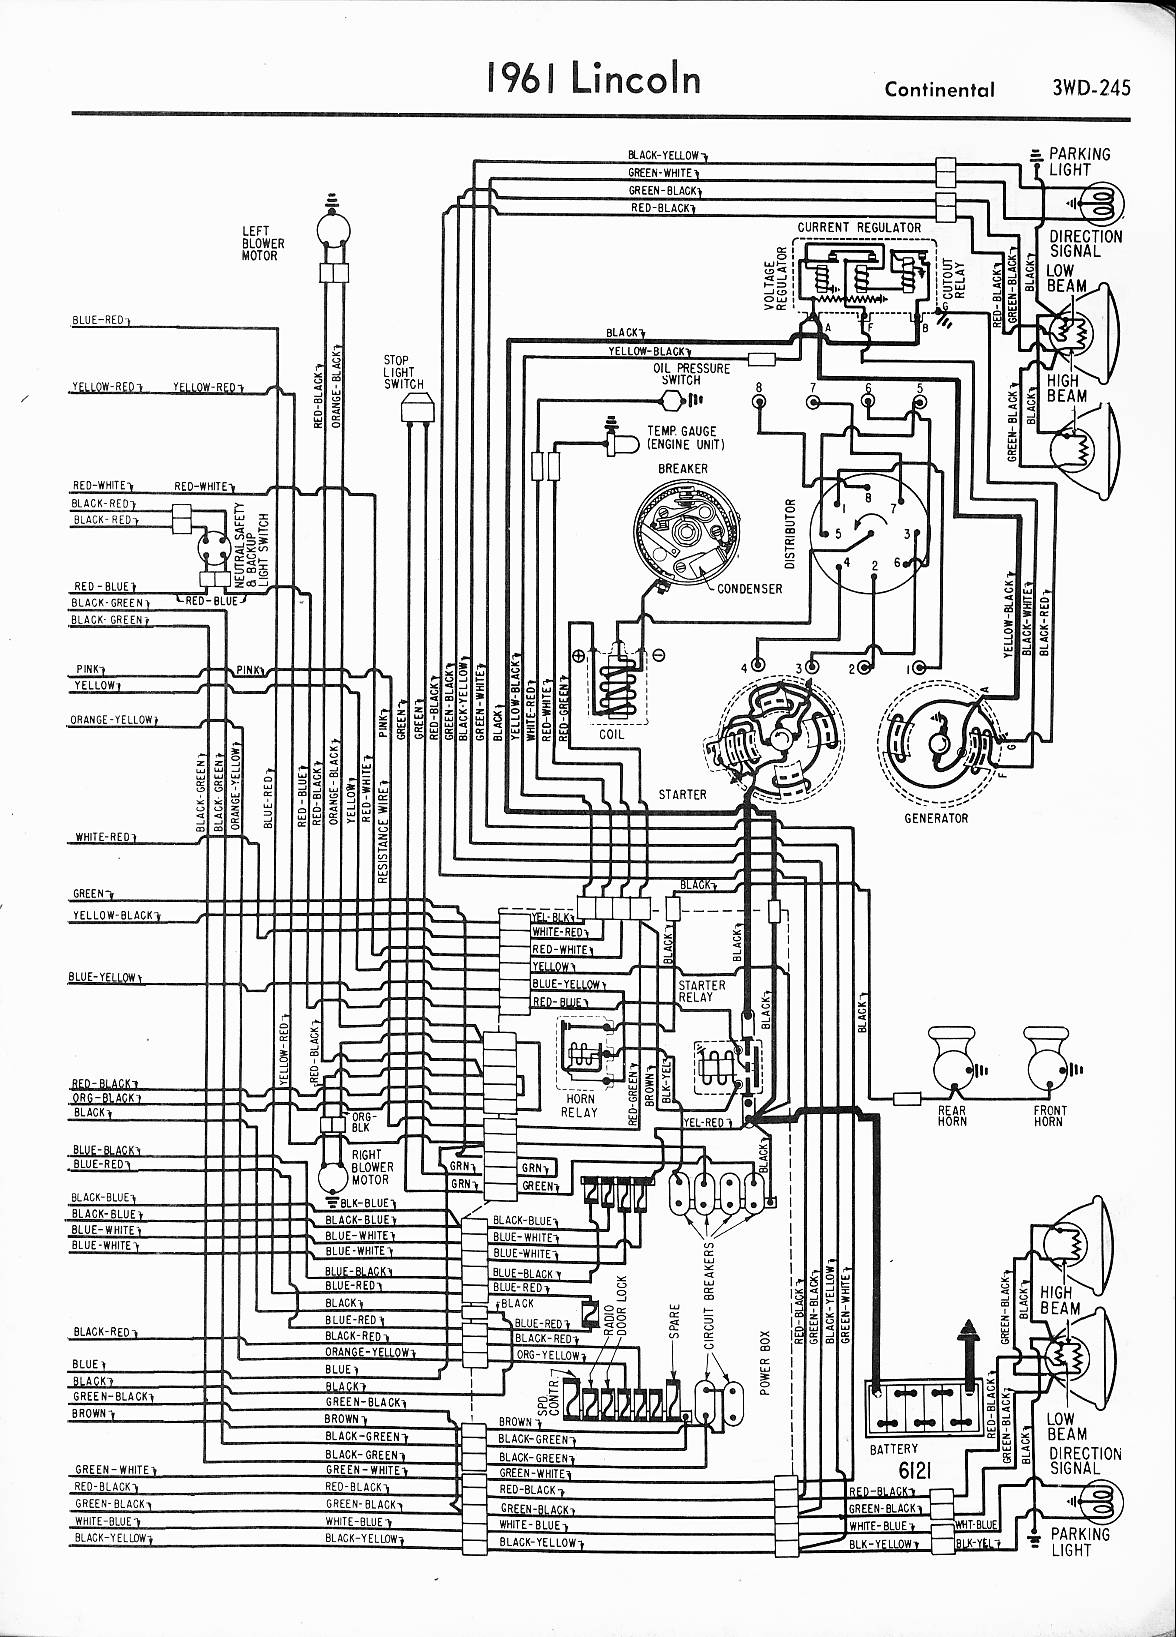 DIAGRAM] 1996 Lincoln Continental Power Window Wiring Diagram FULL Version  HD Quality Wiring Diagram - USECASEDIAGRAMONLINE.LOTEK.FRisuzu rodeo wiring diagram